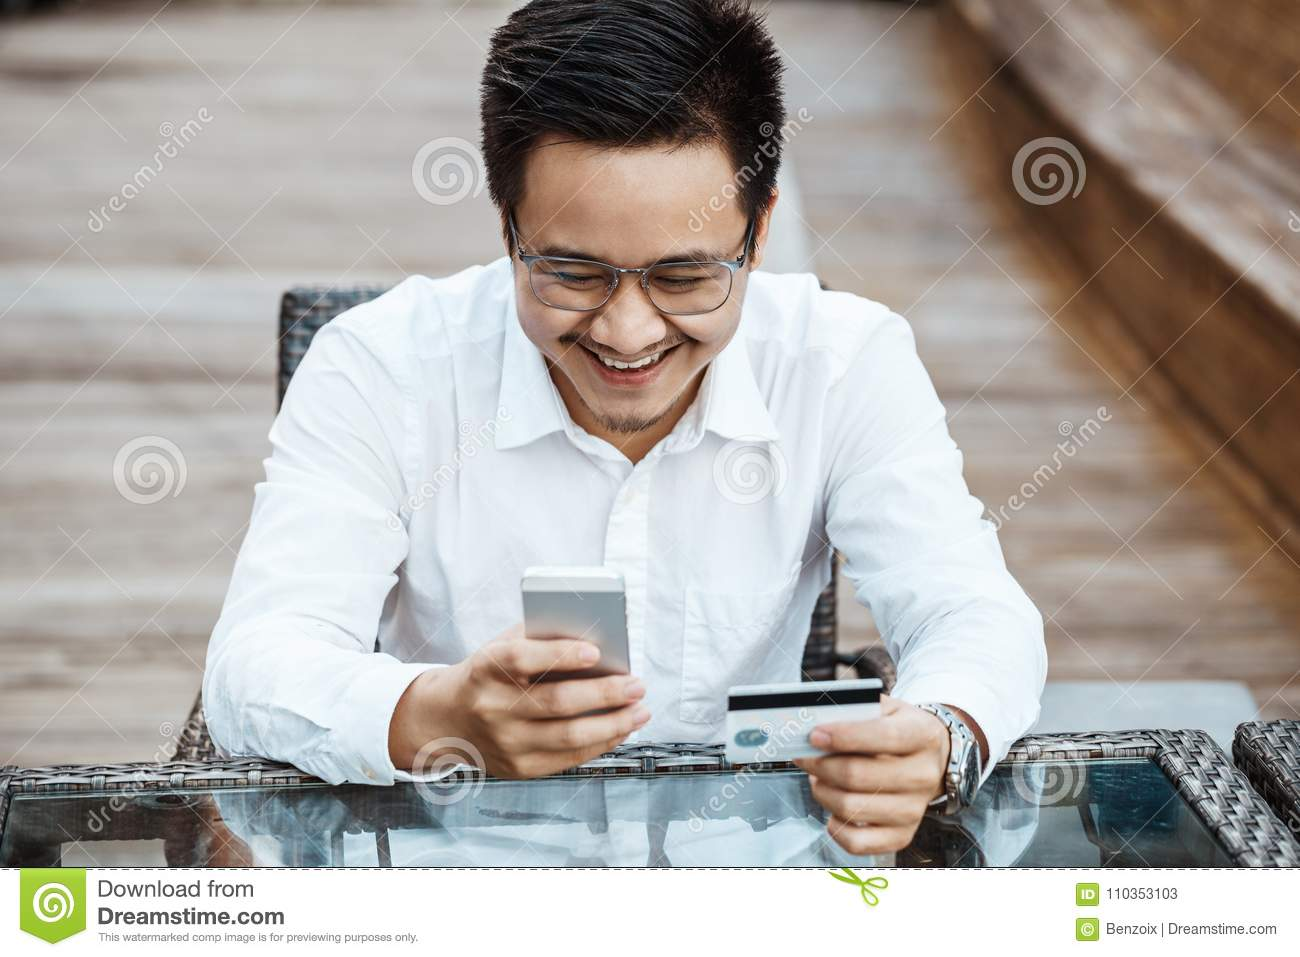 f35189a3fa7 Young Handsome man enjoy shopping online on mobile phone with credit card